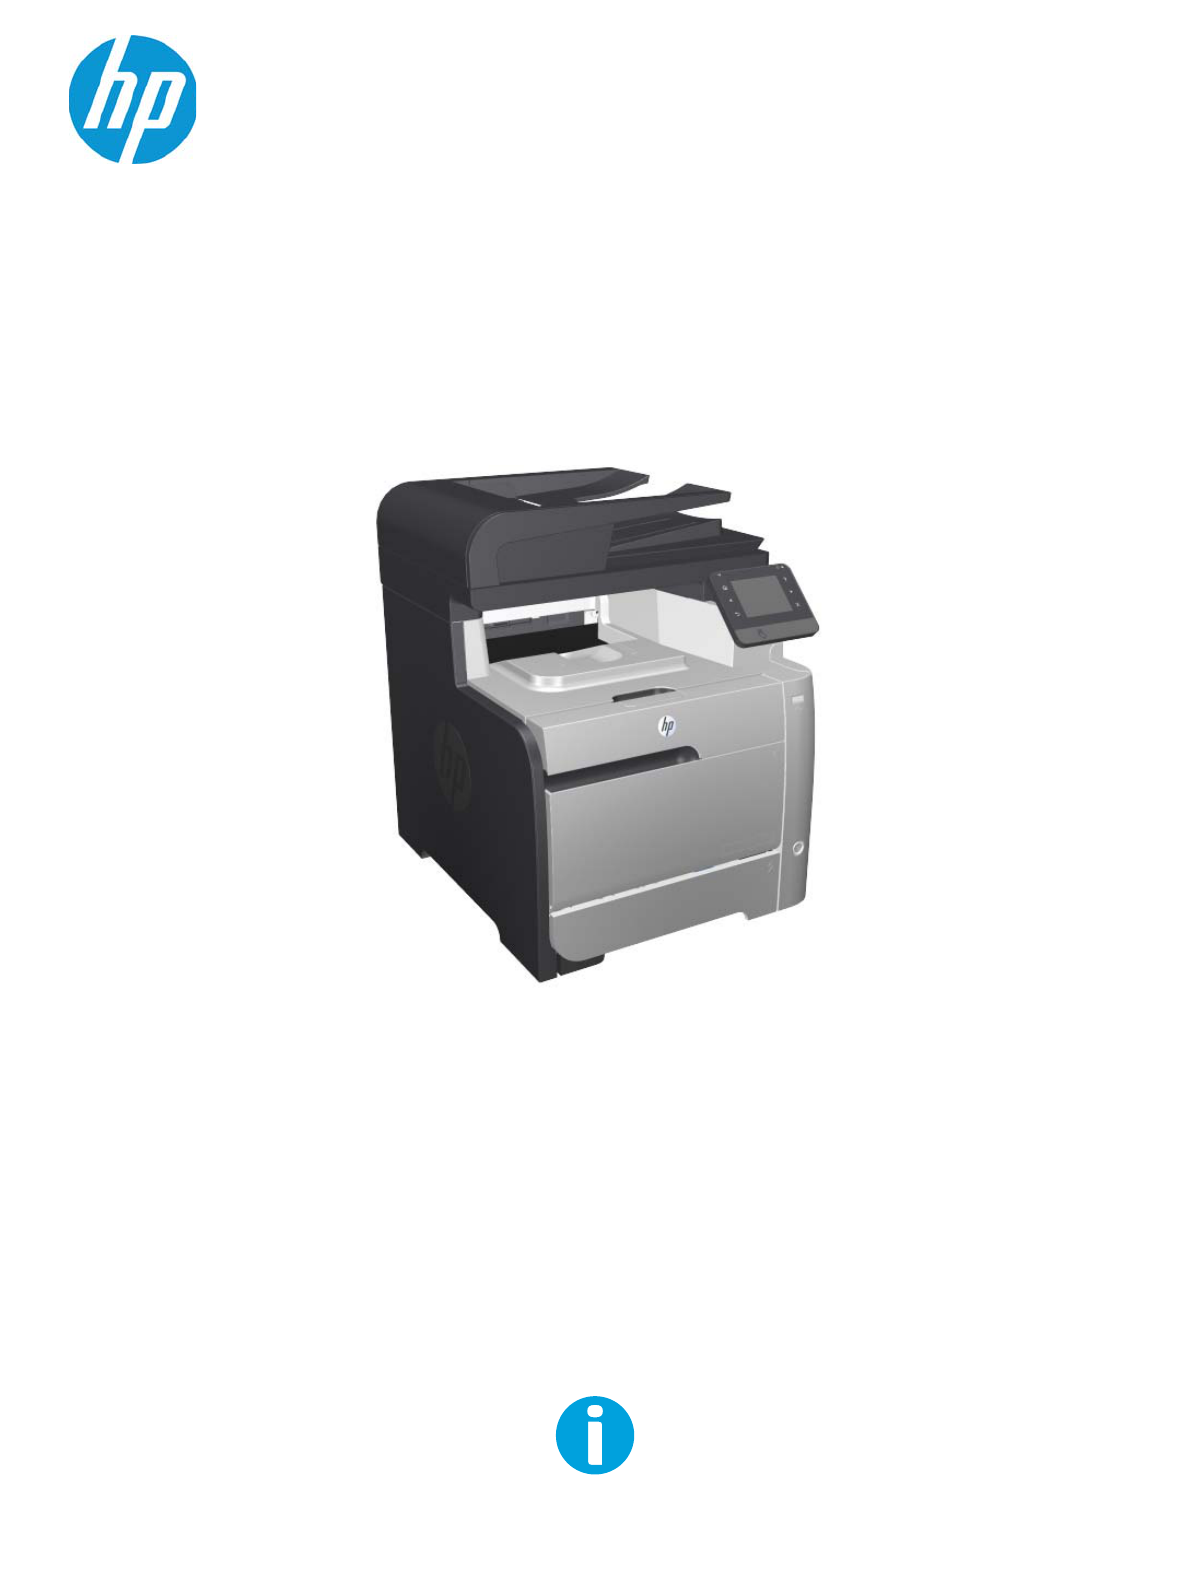 hp laserjet pro color mfp m476 troubleshooting manual rh dectrader com Hewlett-Packard Product Manuals Hewlett-Packard Service Manuals